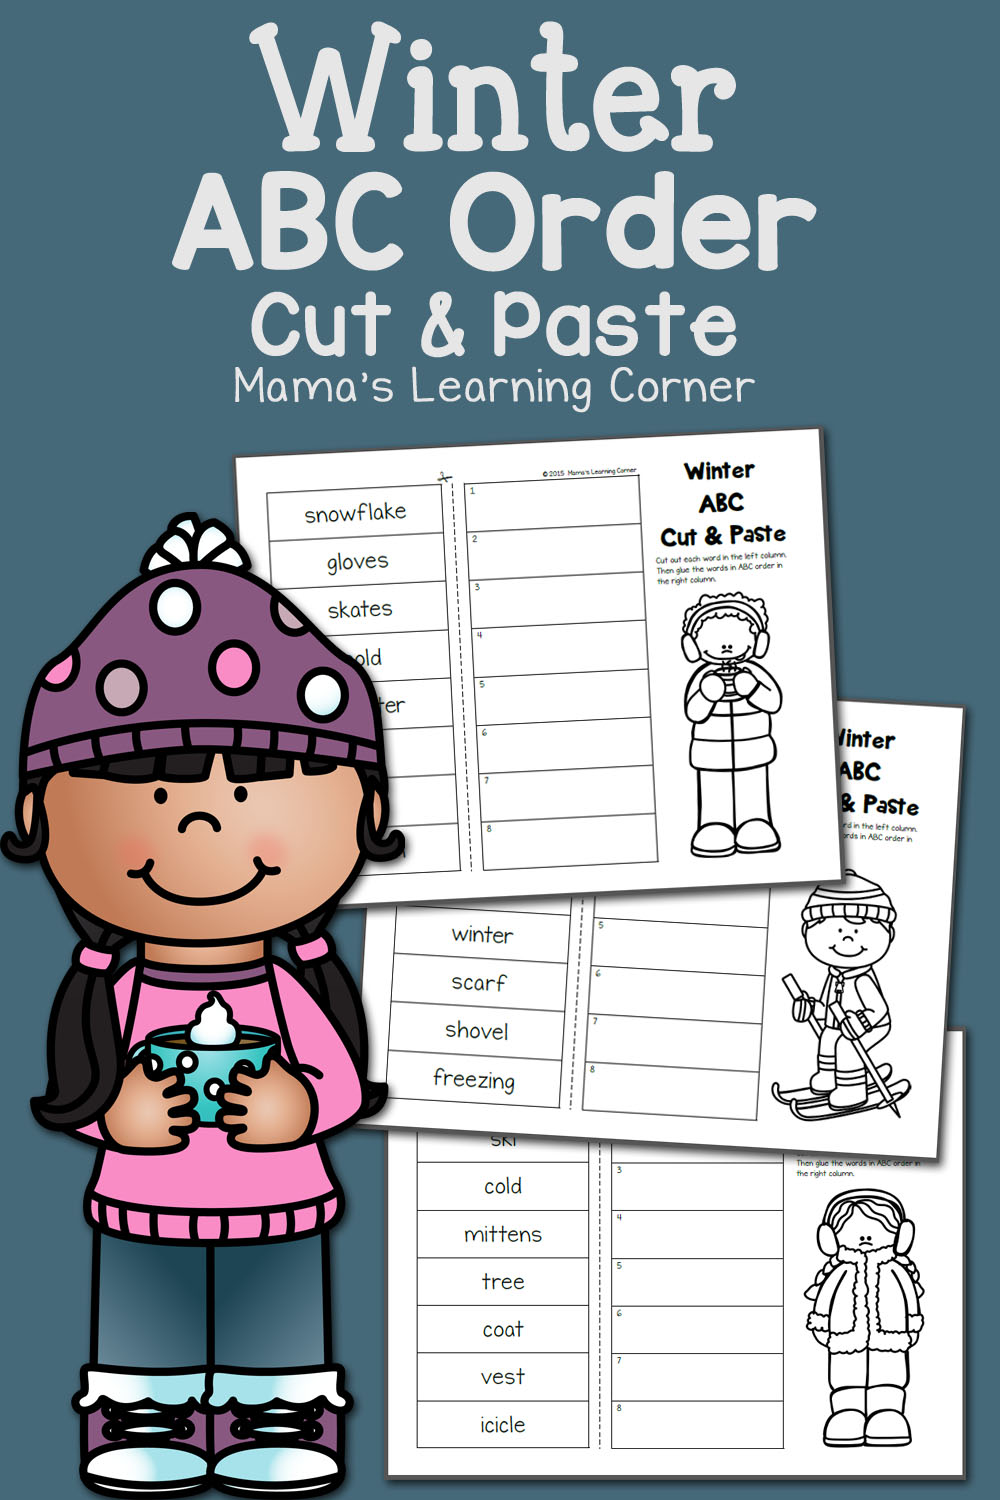 medium resolution of Winter Cut and Paste: ABC Order - Mamas Learning Corner